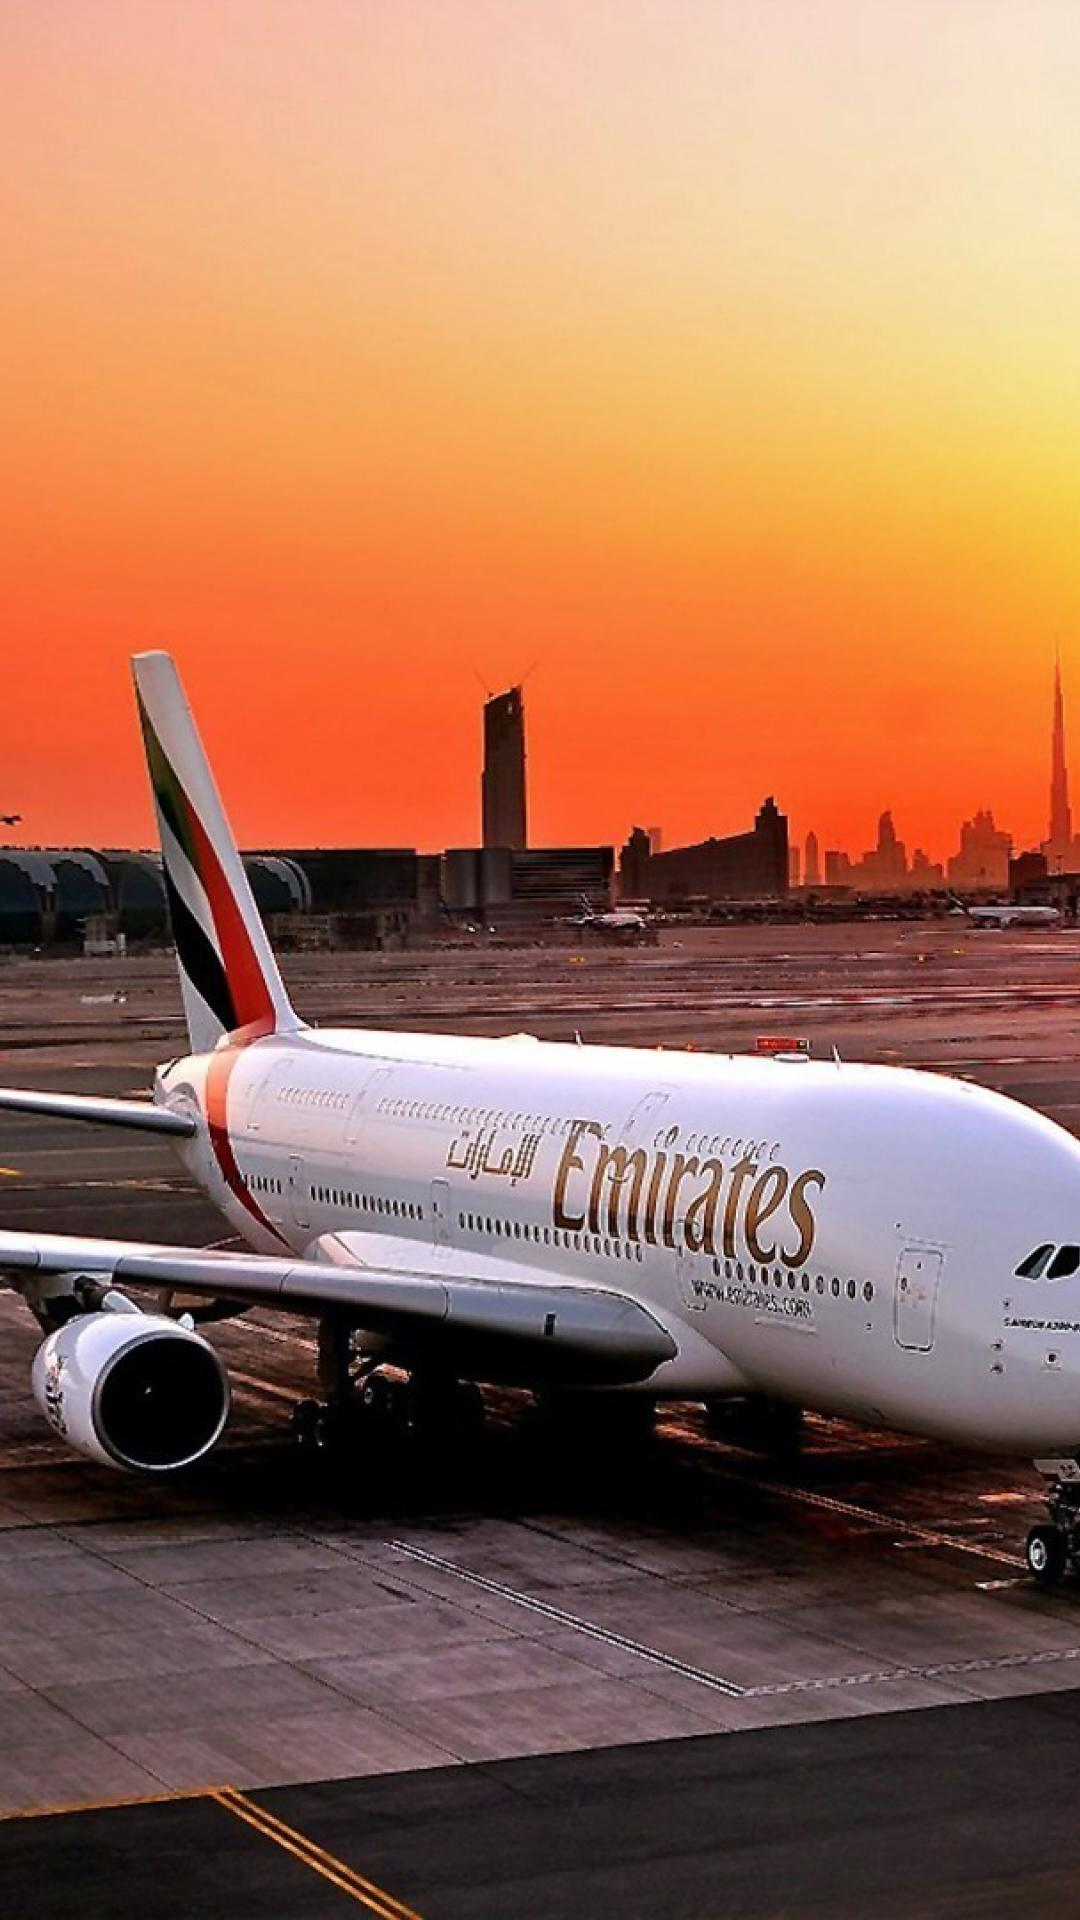 Emirates Airline Wallpapers - Wallpaper Cave